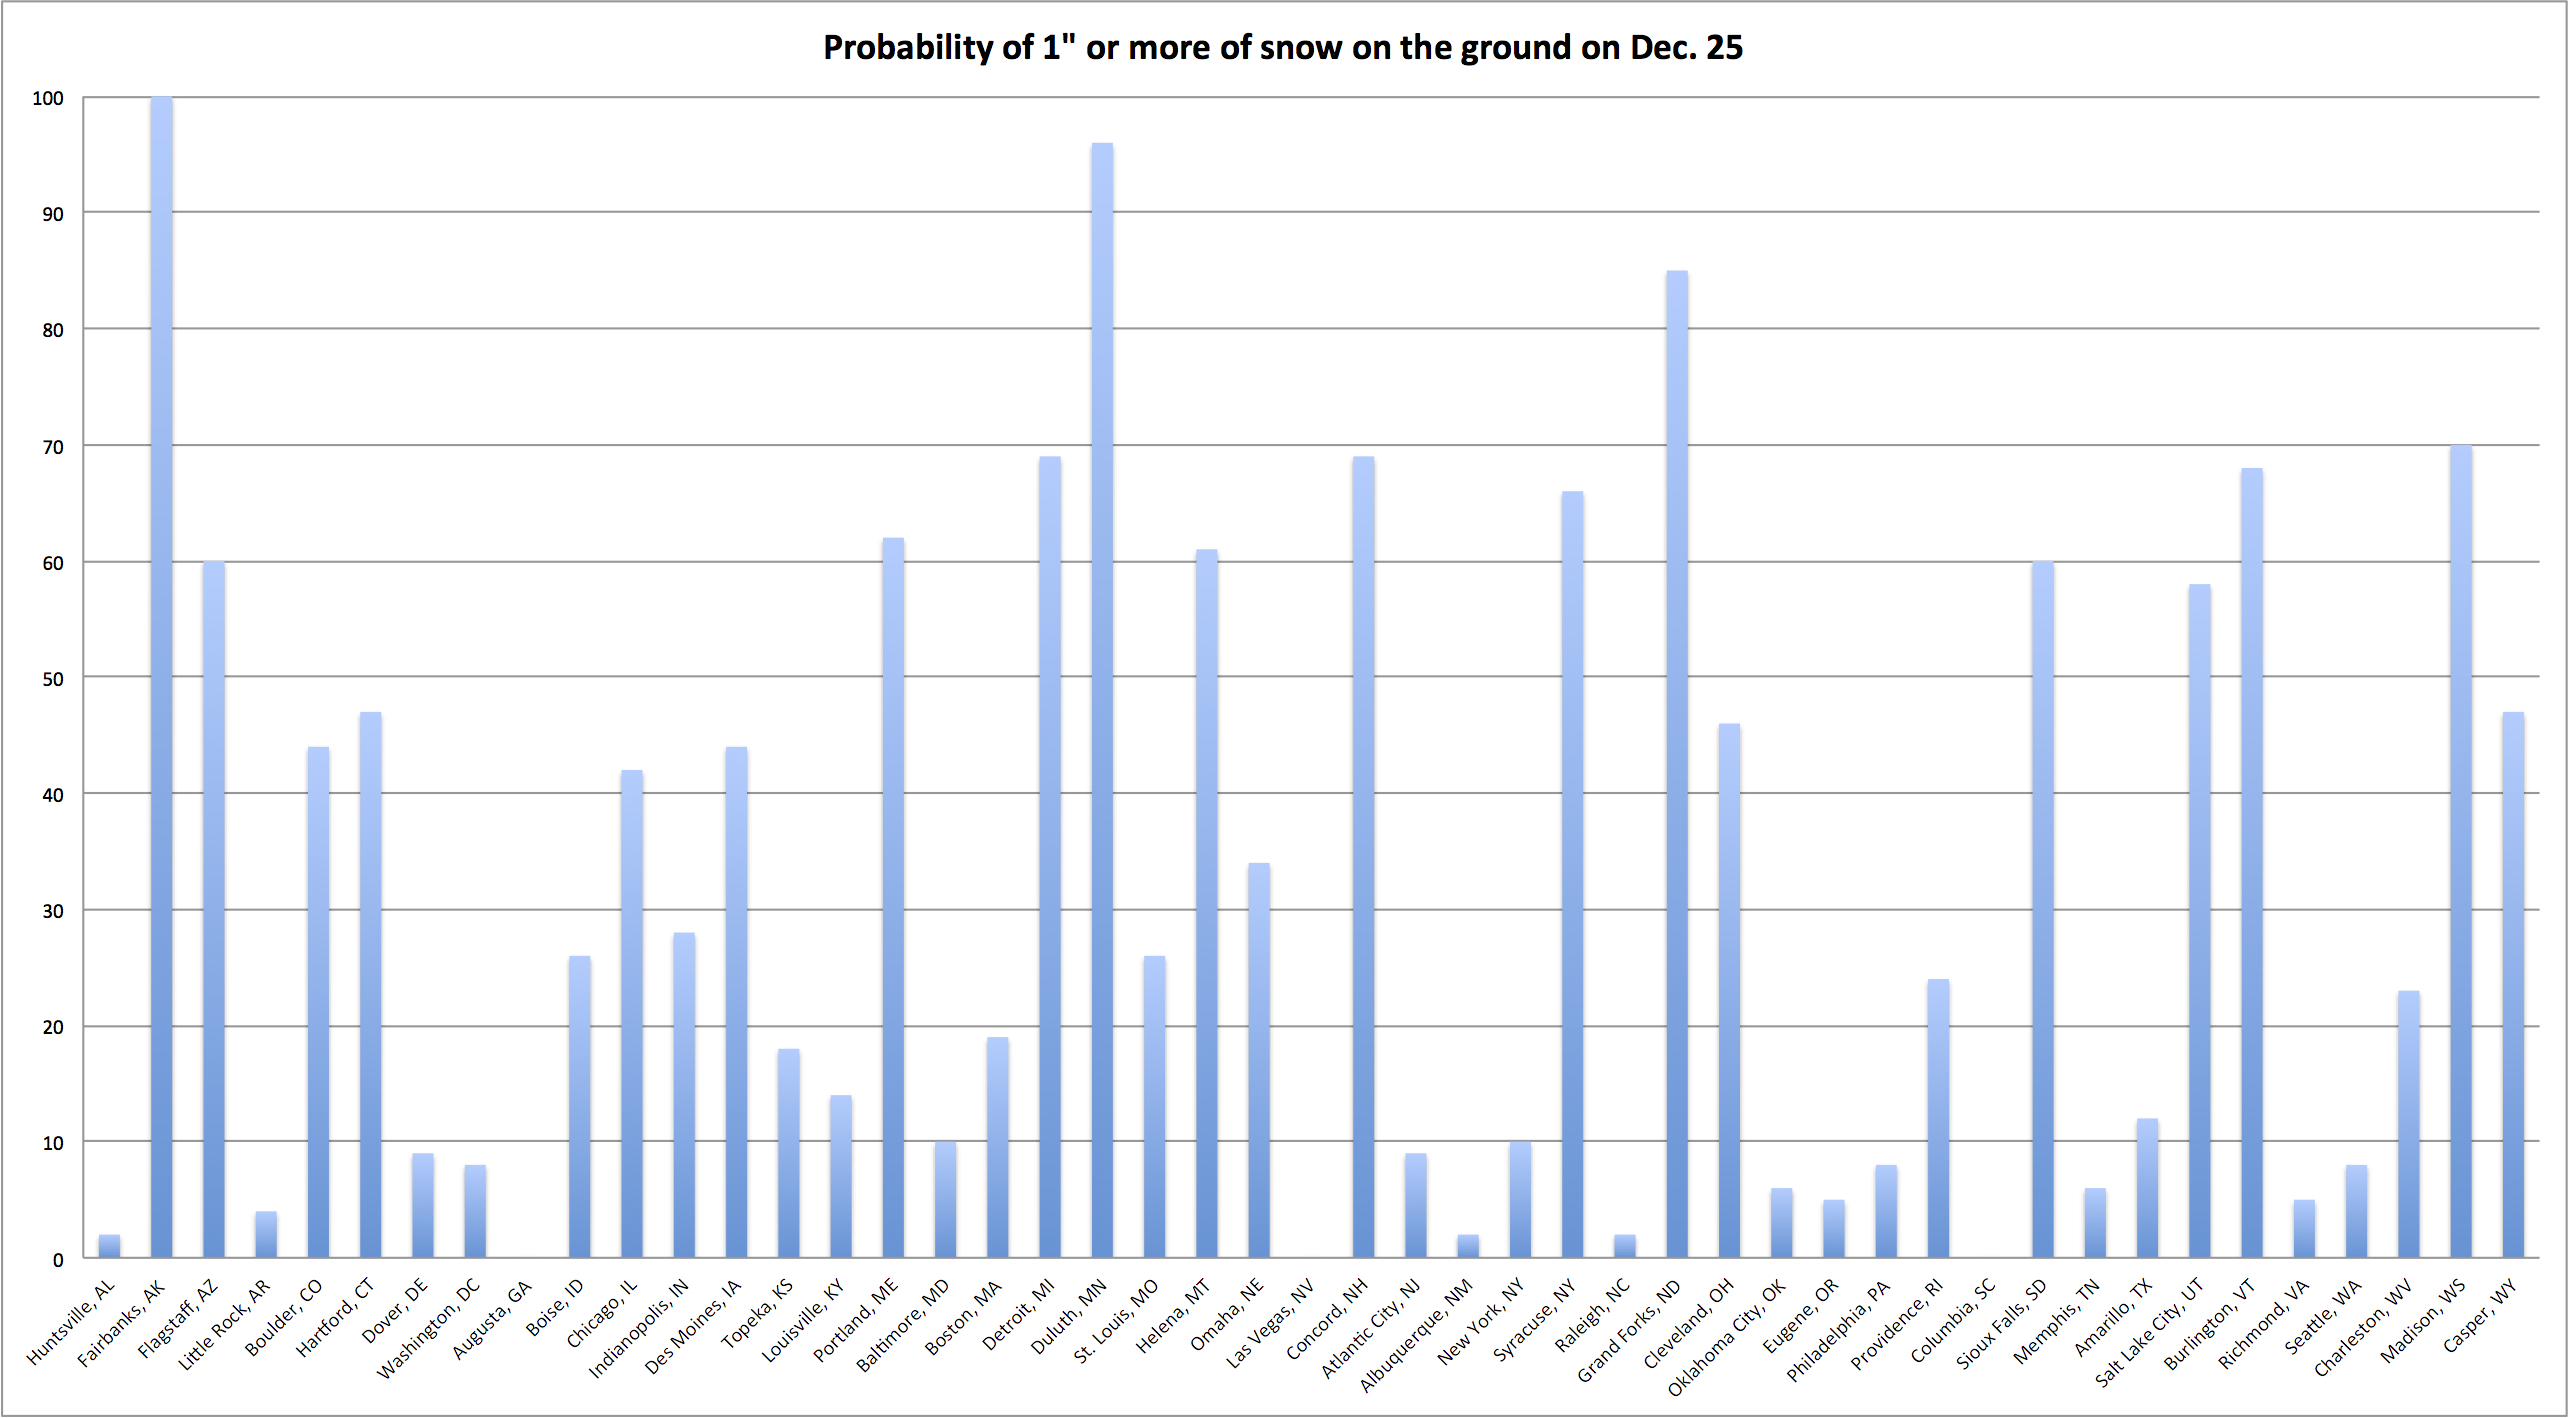 US - Probability of Christmas snow